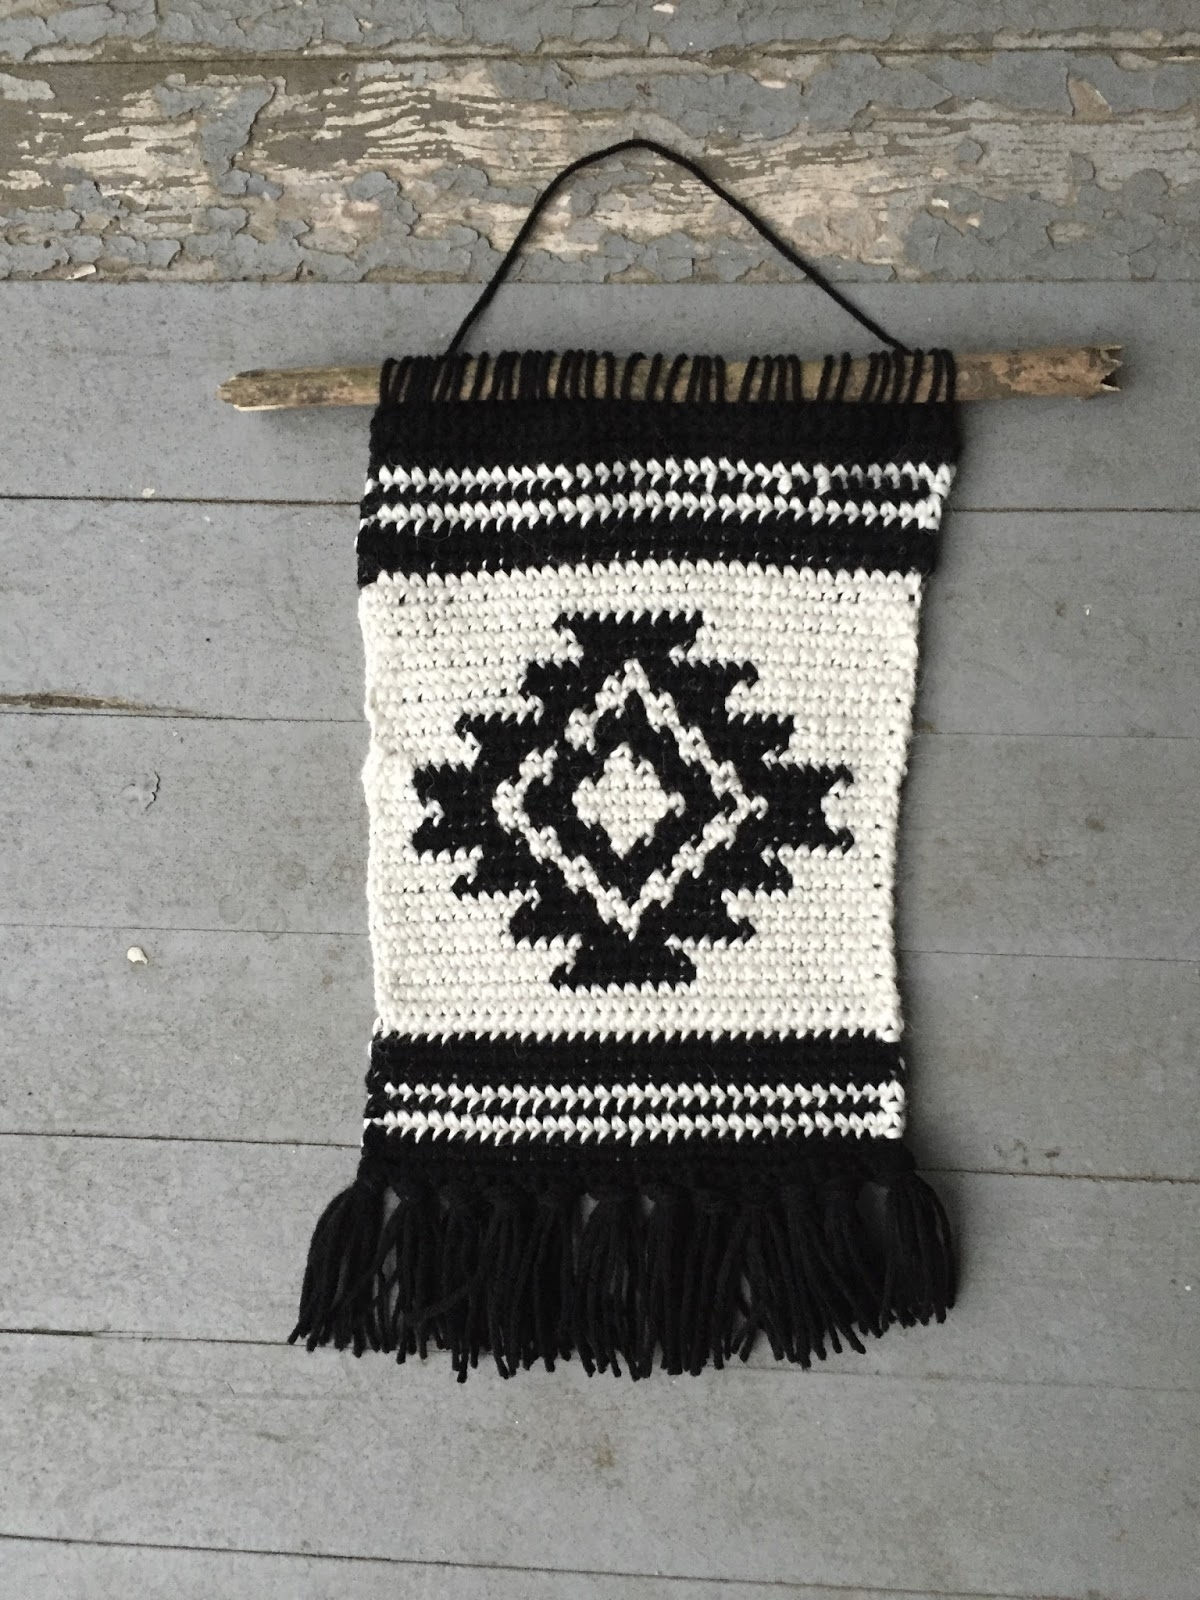 Shirley And Eadie: Crochet Wall Hanging Tutorial Pertaining To 2018 Crochet Wall Art (View 11 of 20)